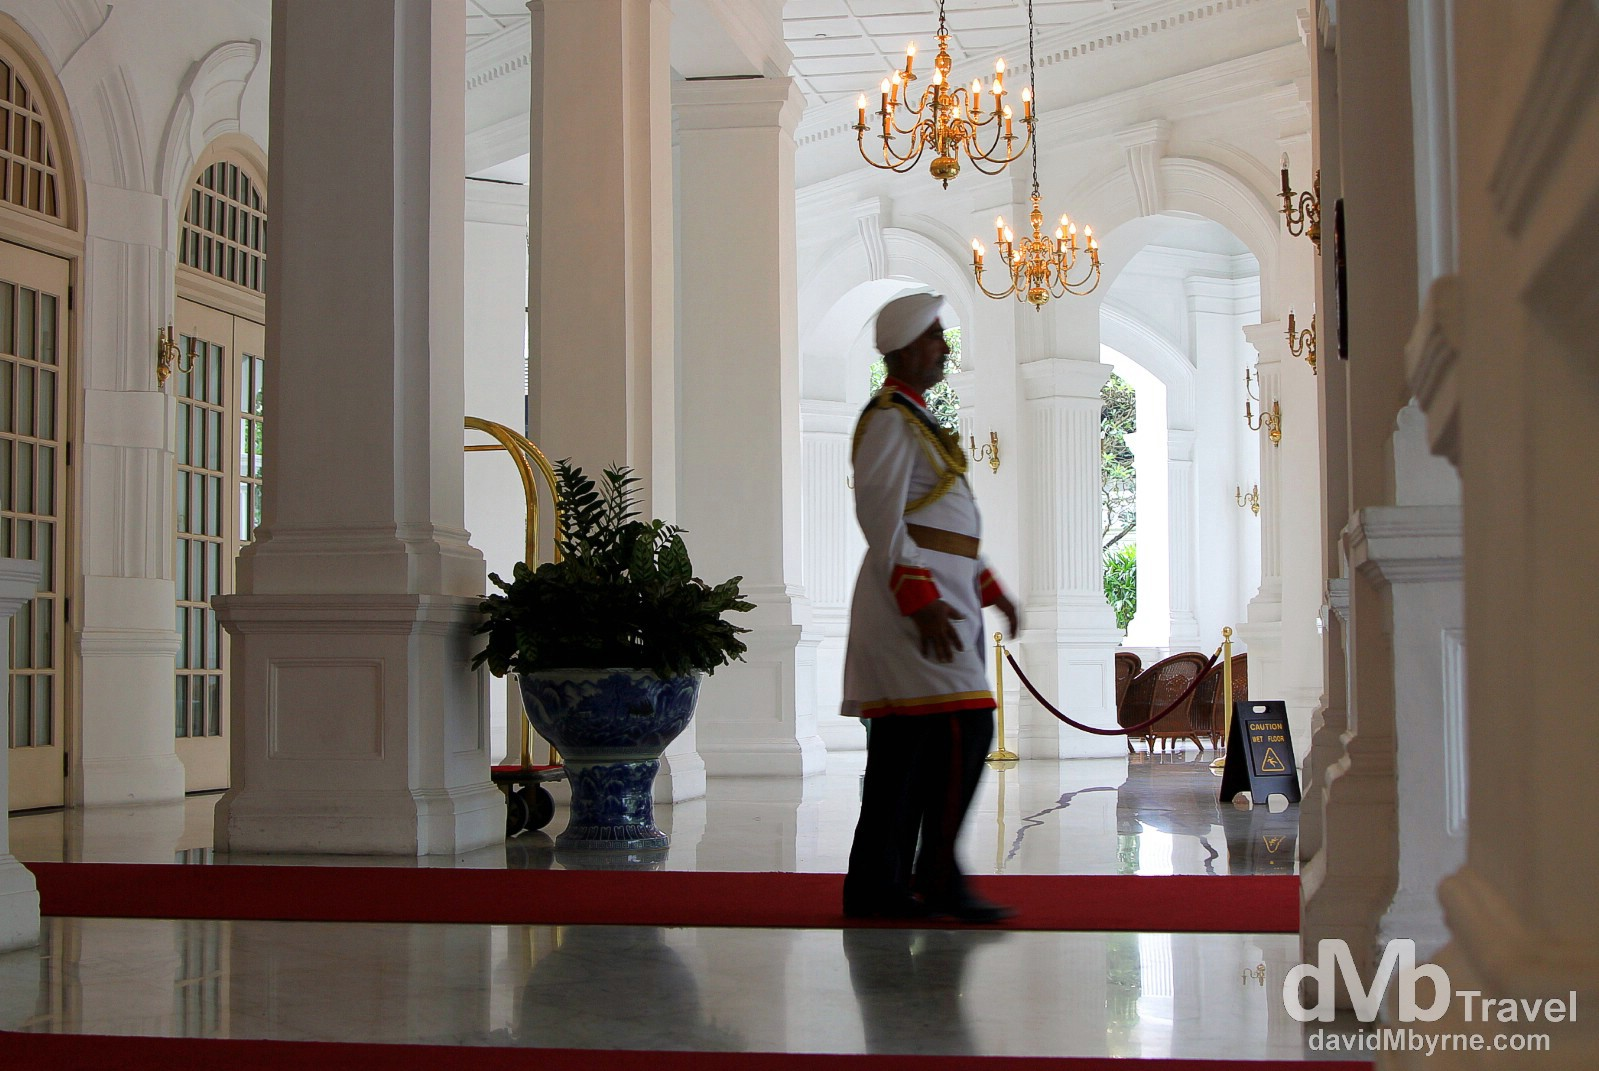 A doorman at the lobby entrance to Raffles Hotel, Singapore. A Singaporean institution & colonial opulence personified, the regal Raffles Hotel opened as a modest 10-room bungalow in 1887 with the main building following in 1889. By the 1970's it had seen better days & was a shabby relic of its old, glamorous self. A major revamp in time for a 1991 reopening brought it back to something resembling its former glory. I spent an hour or so sniffing around and sticking my camera at white walls, arches, fancy gold chandeliers, polished marble floors, & rich people. It was fun. Raffles Hotel, Singapore. March 28th 2012.